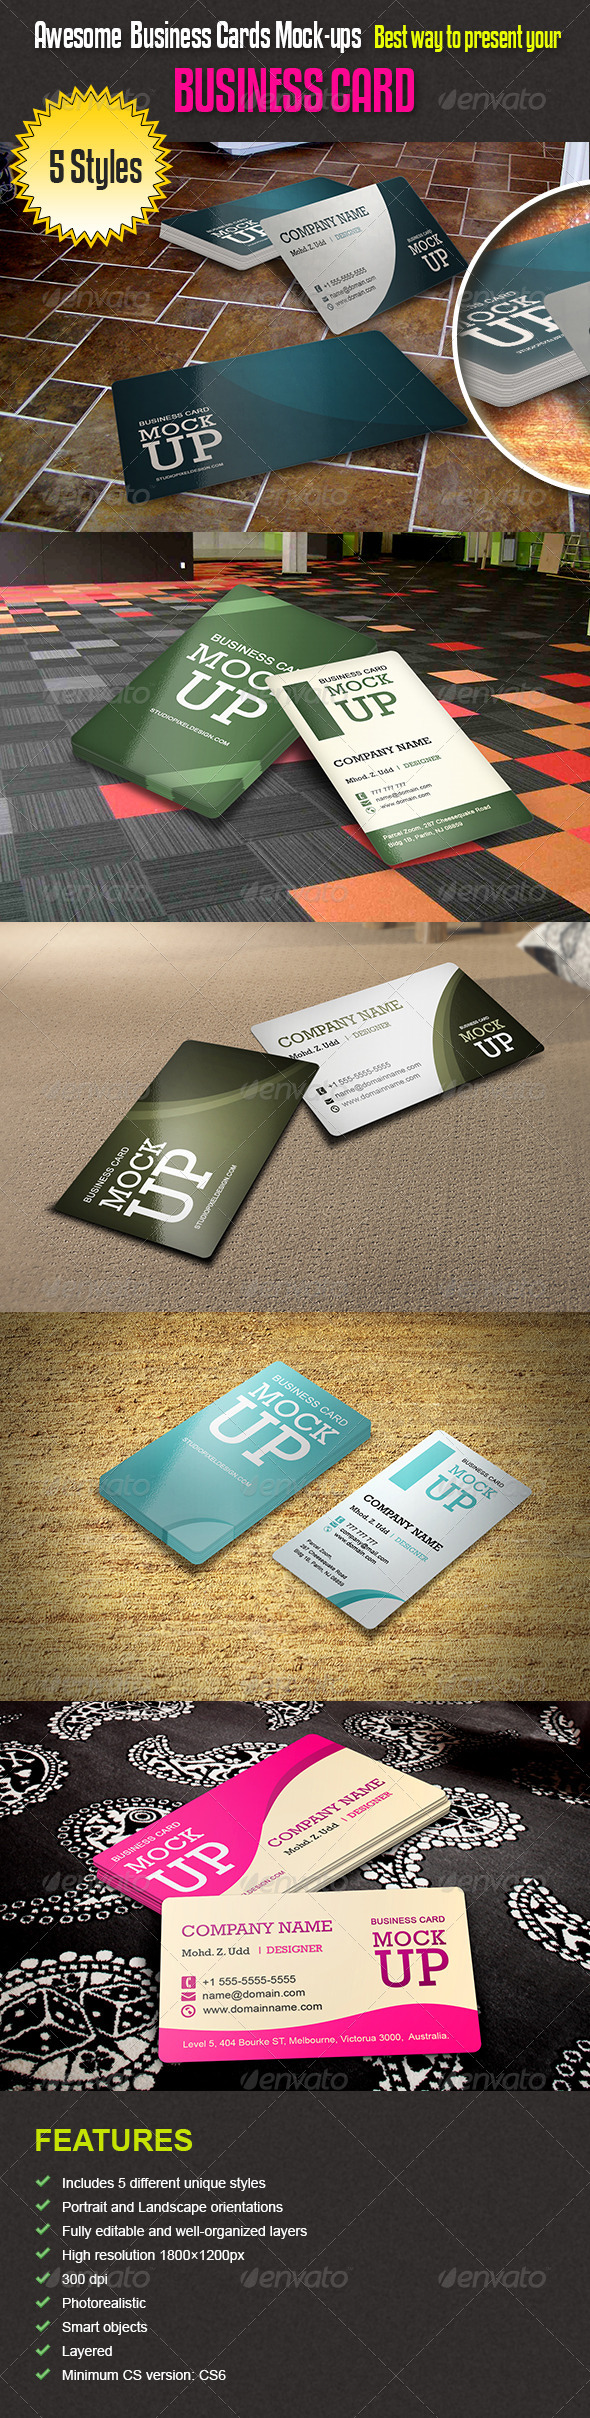 GraphicRiver Awesome Business Cards Mock-ups 5161152